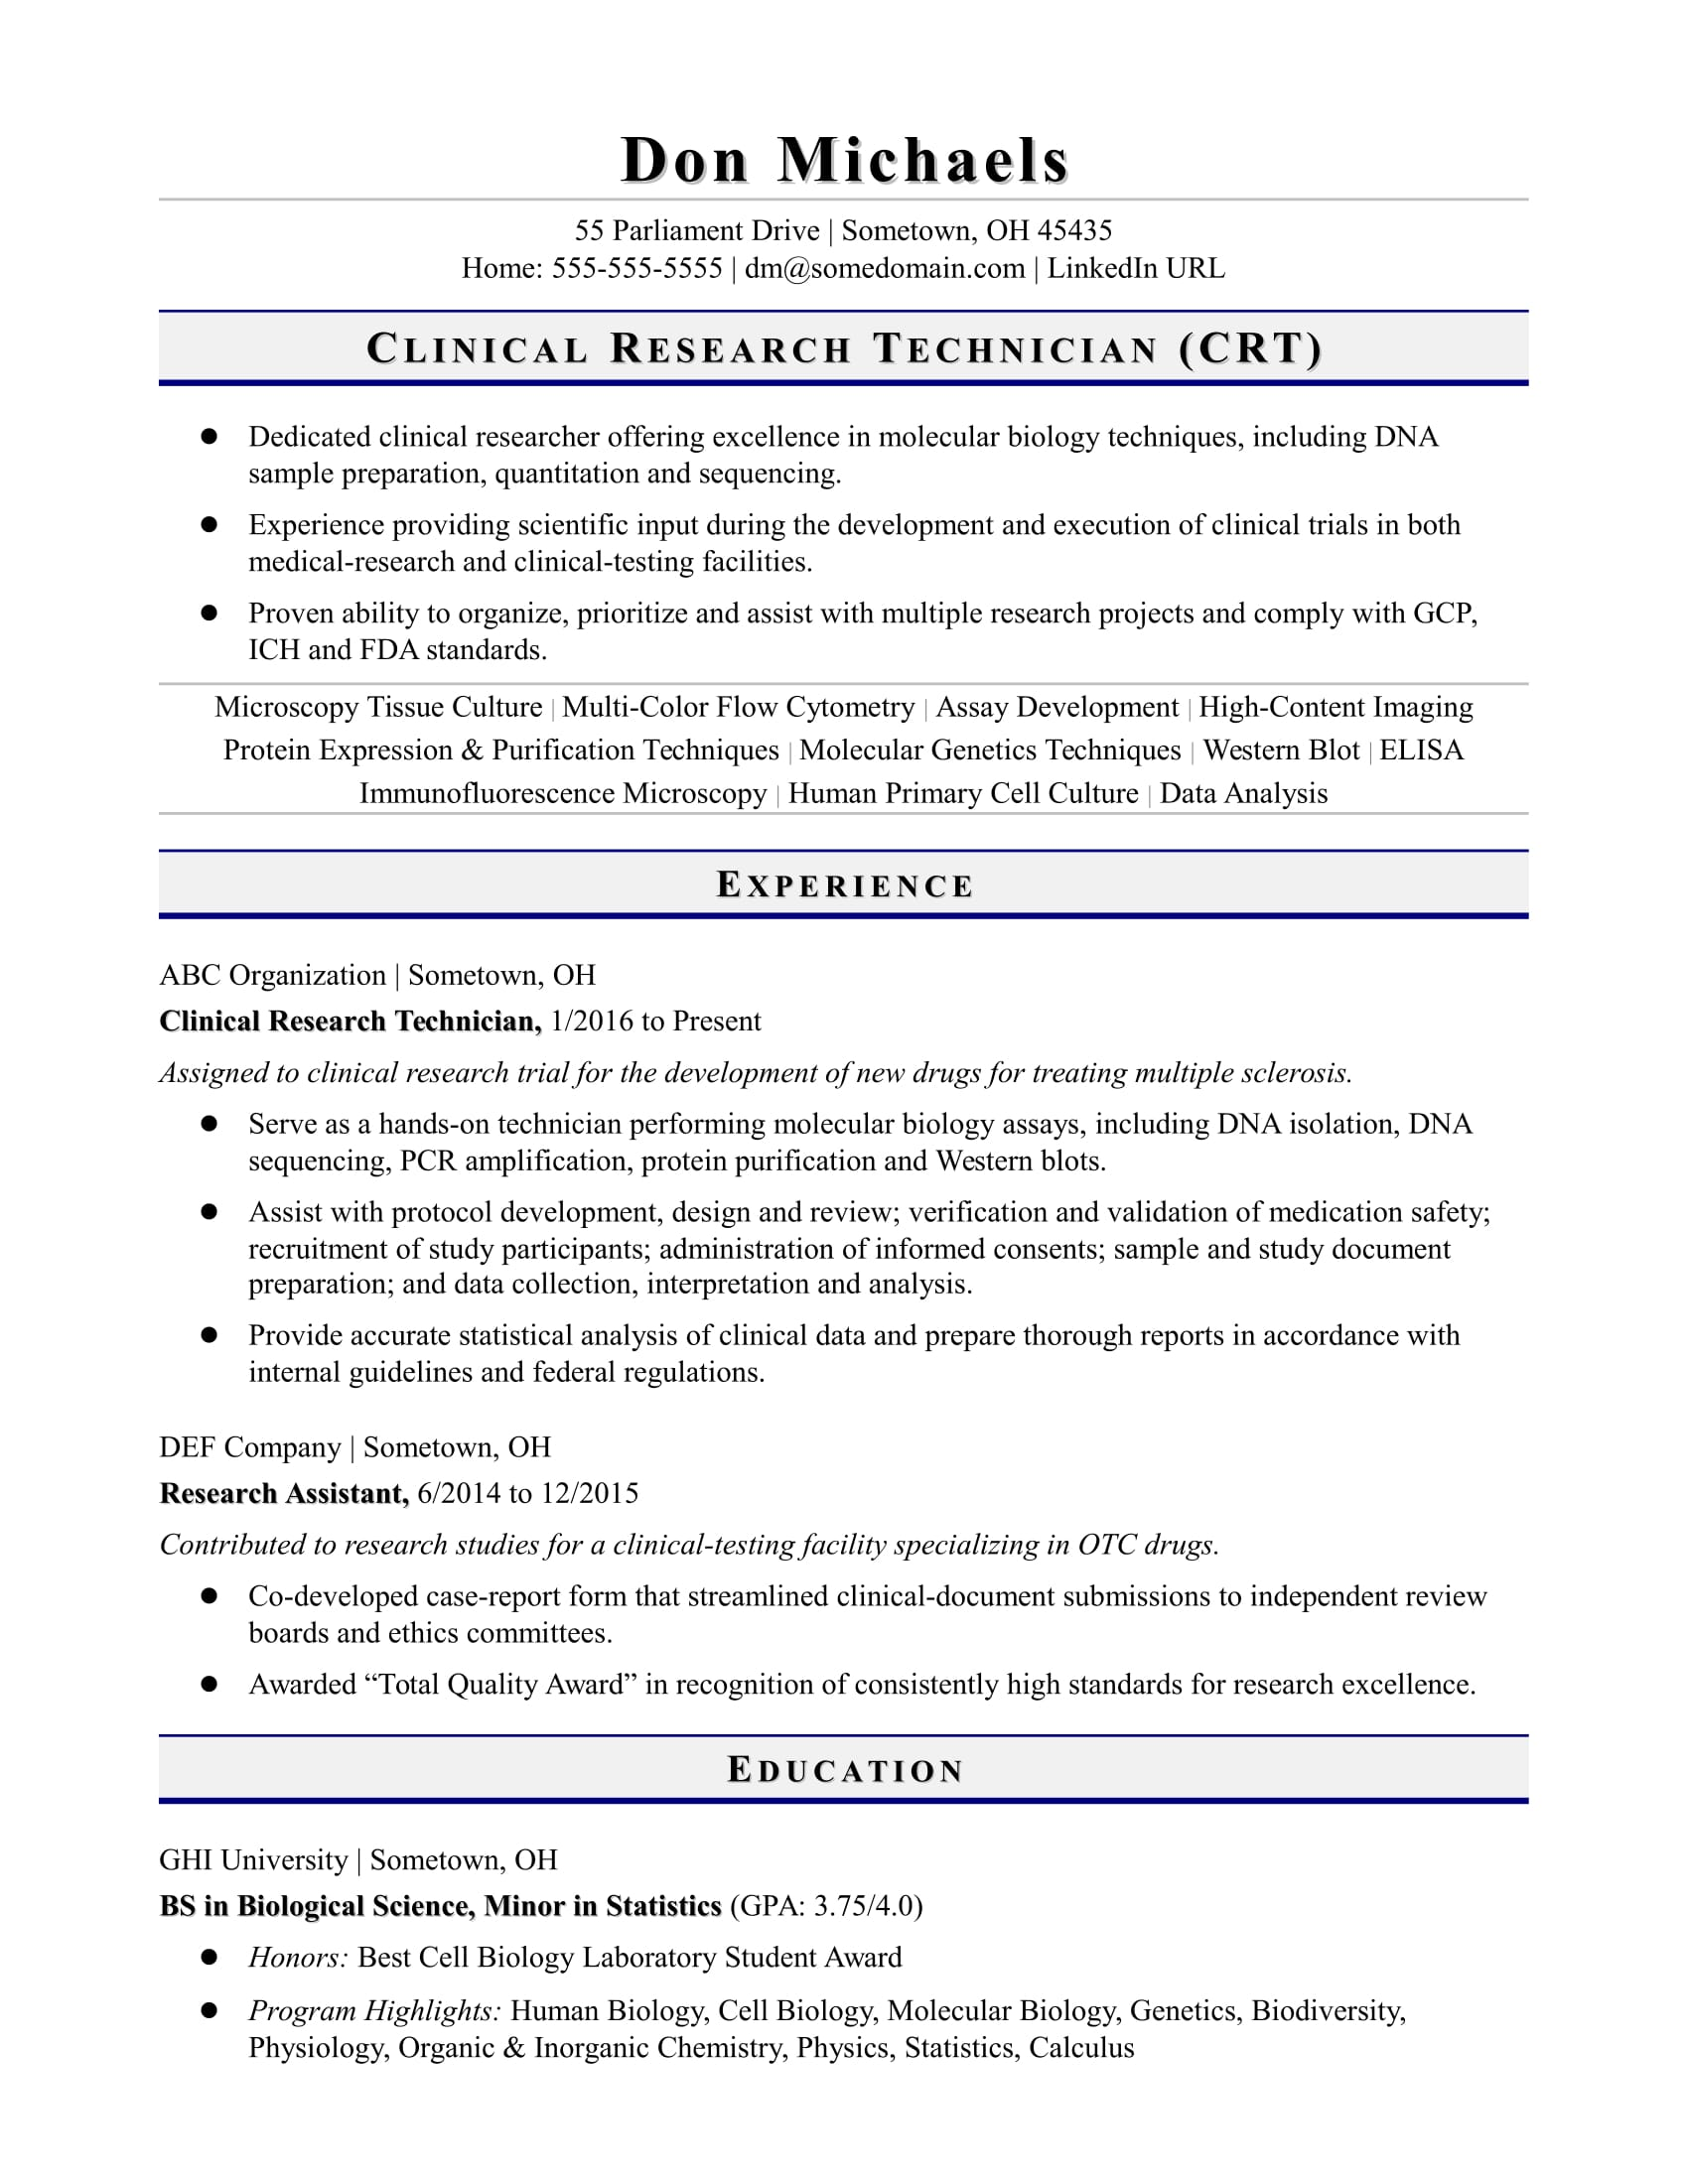 Sample Resume For An Entry Level Research Technician  A Resume Sample